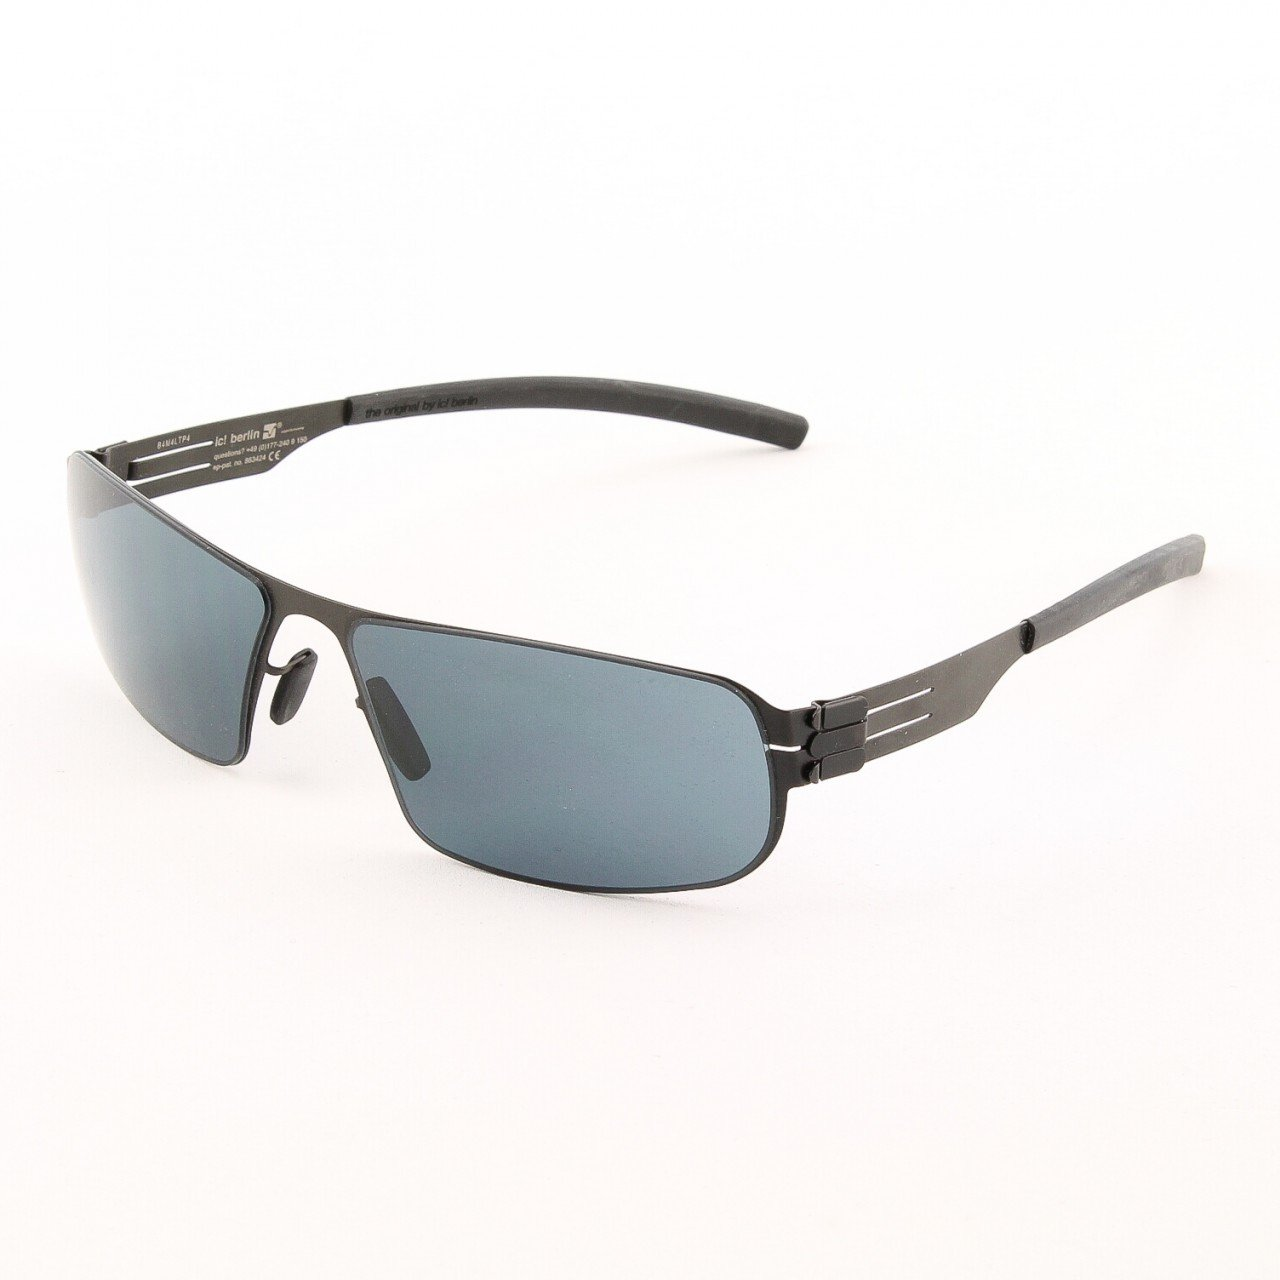 ic! Berlin Mortimer Sunglasses Col. Black with Grey Lenses